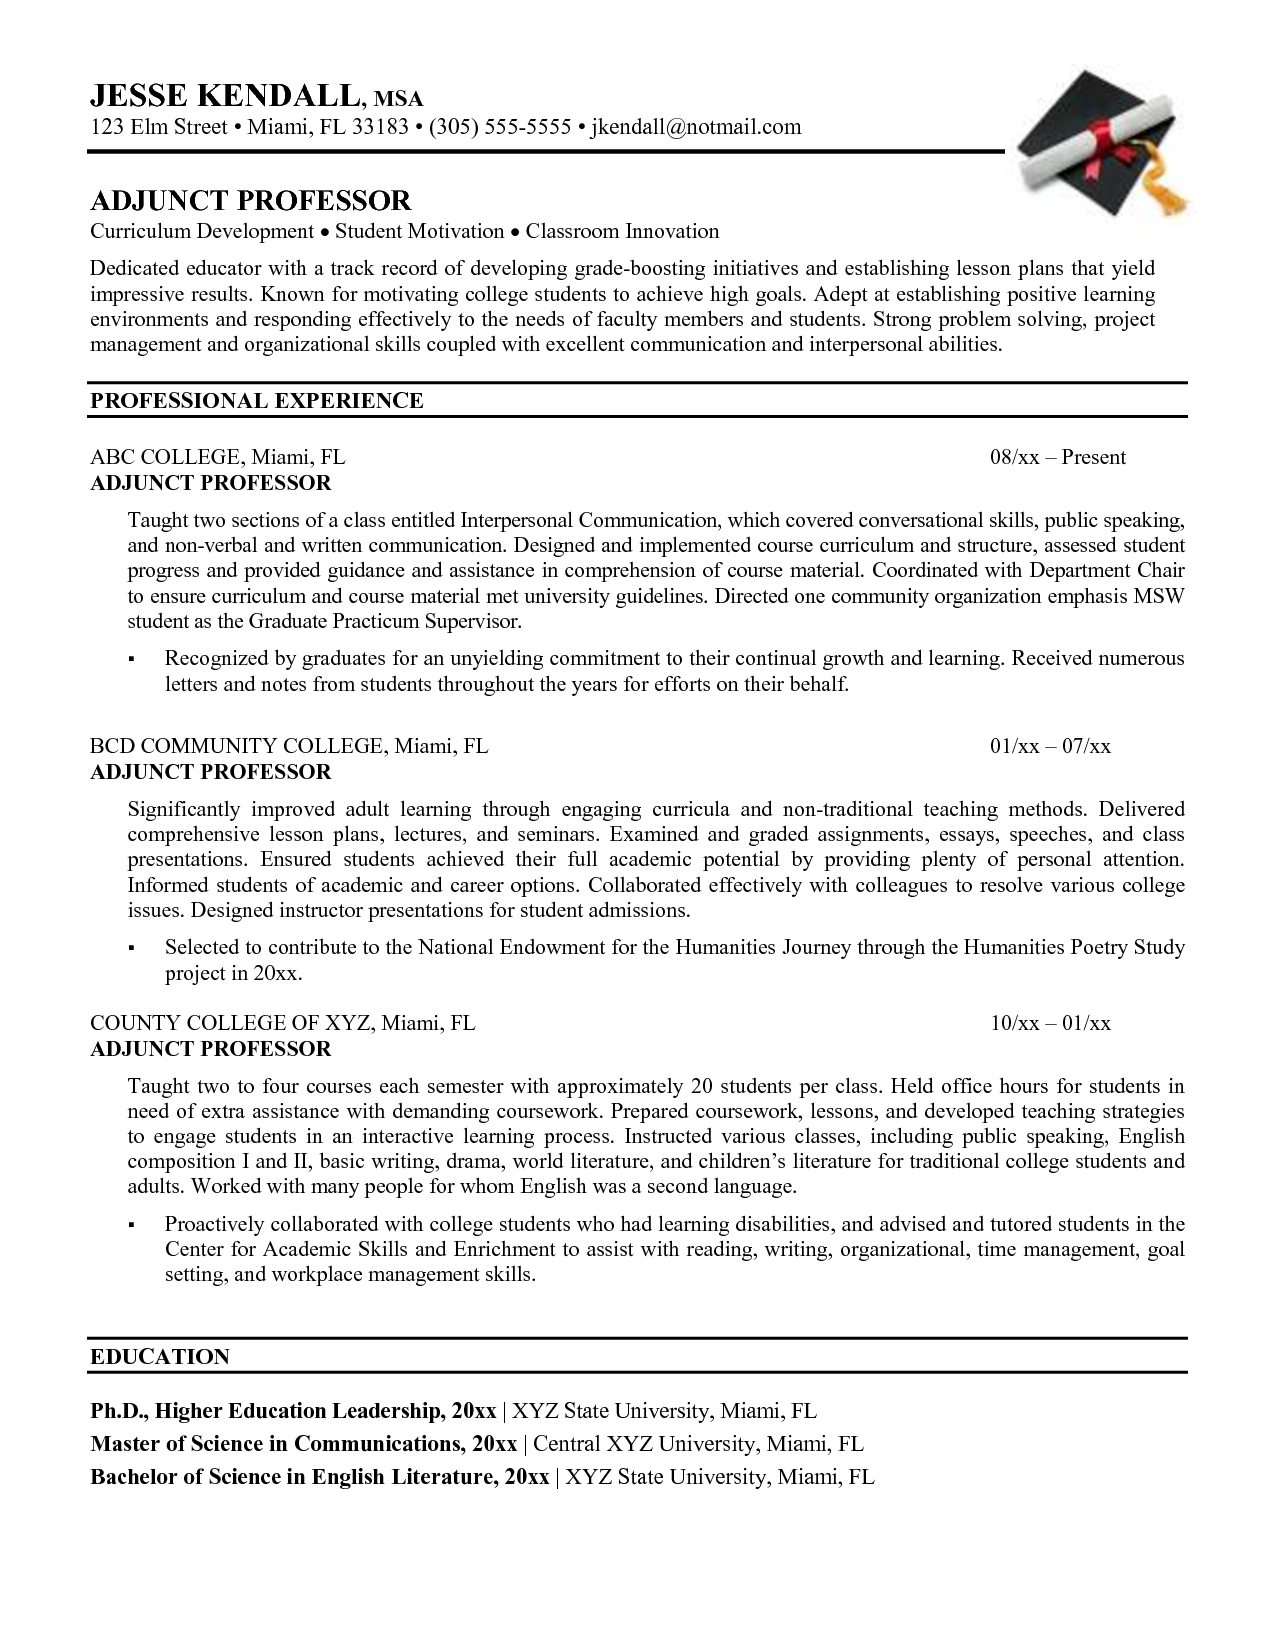 Resume Resume Sample College Professor resume samples assistant professor frizzigame format template